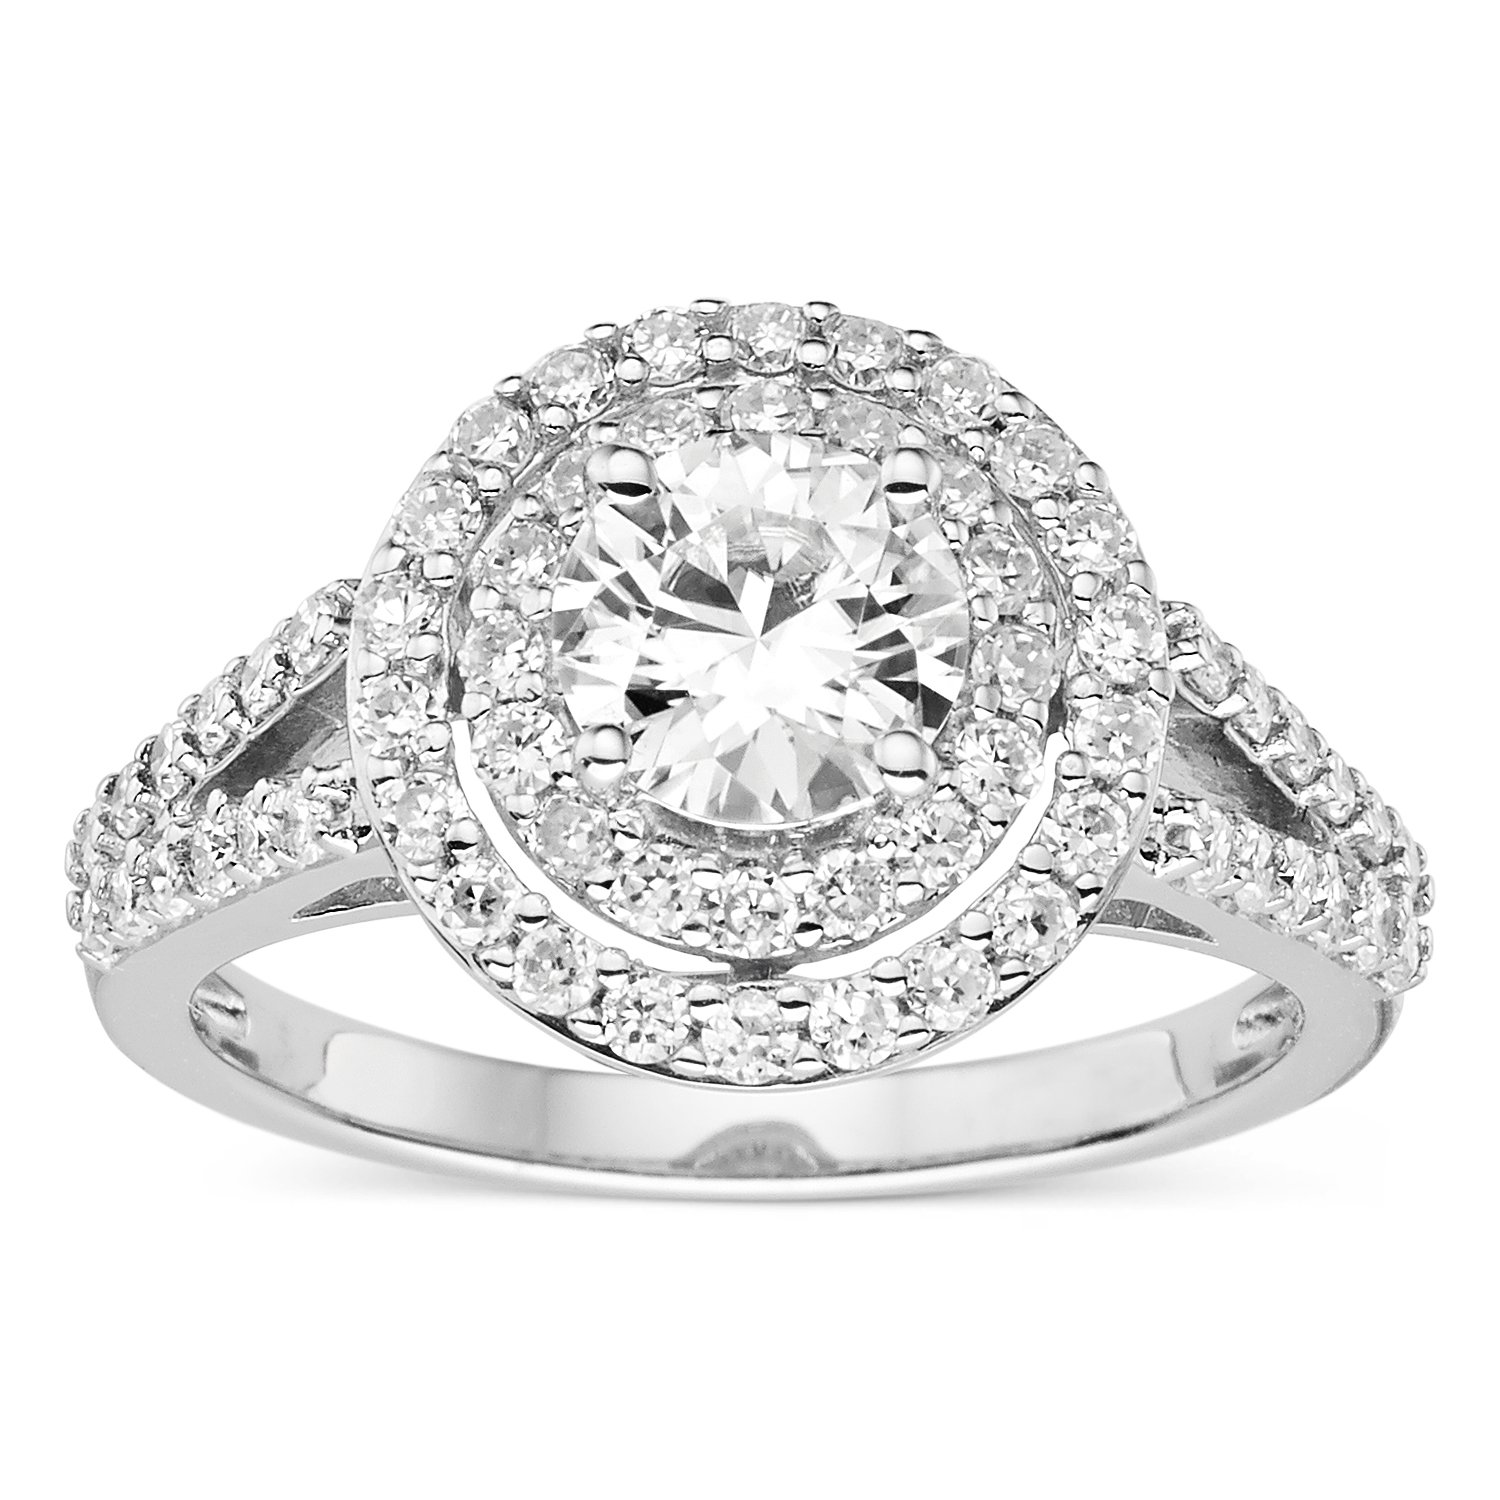 Forever Classic Round Cut 6.0mm Moissanite Halo Ring-size 6, 1.42cttw DEW By Charles & Colvard by Charles & Colvard